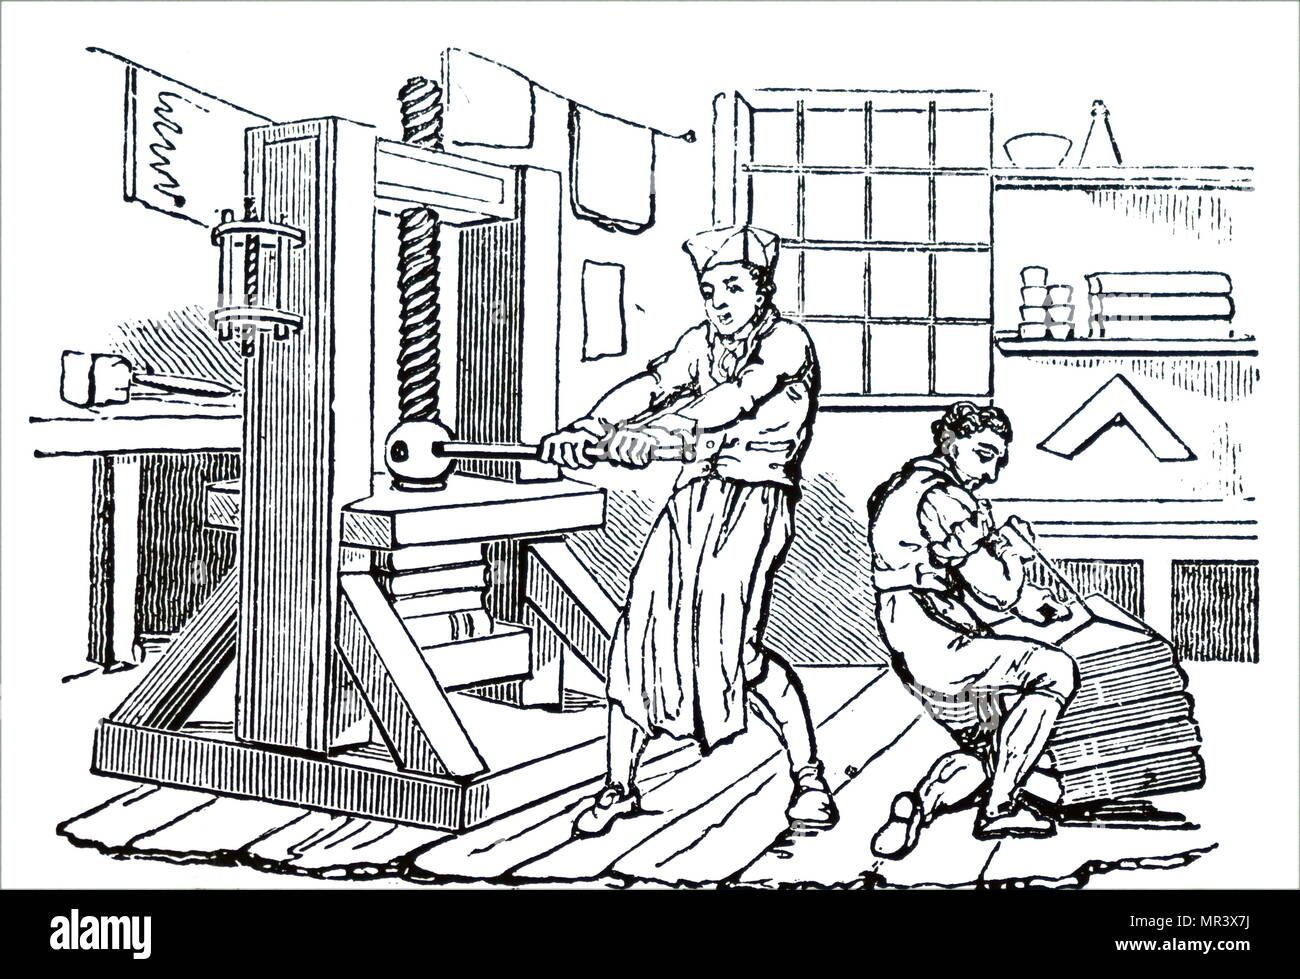 Engraving depicting the compression of printed sheets in a manual press prior to binding. Dated 19th century - Stock Image